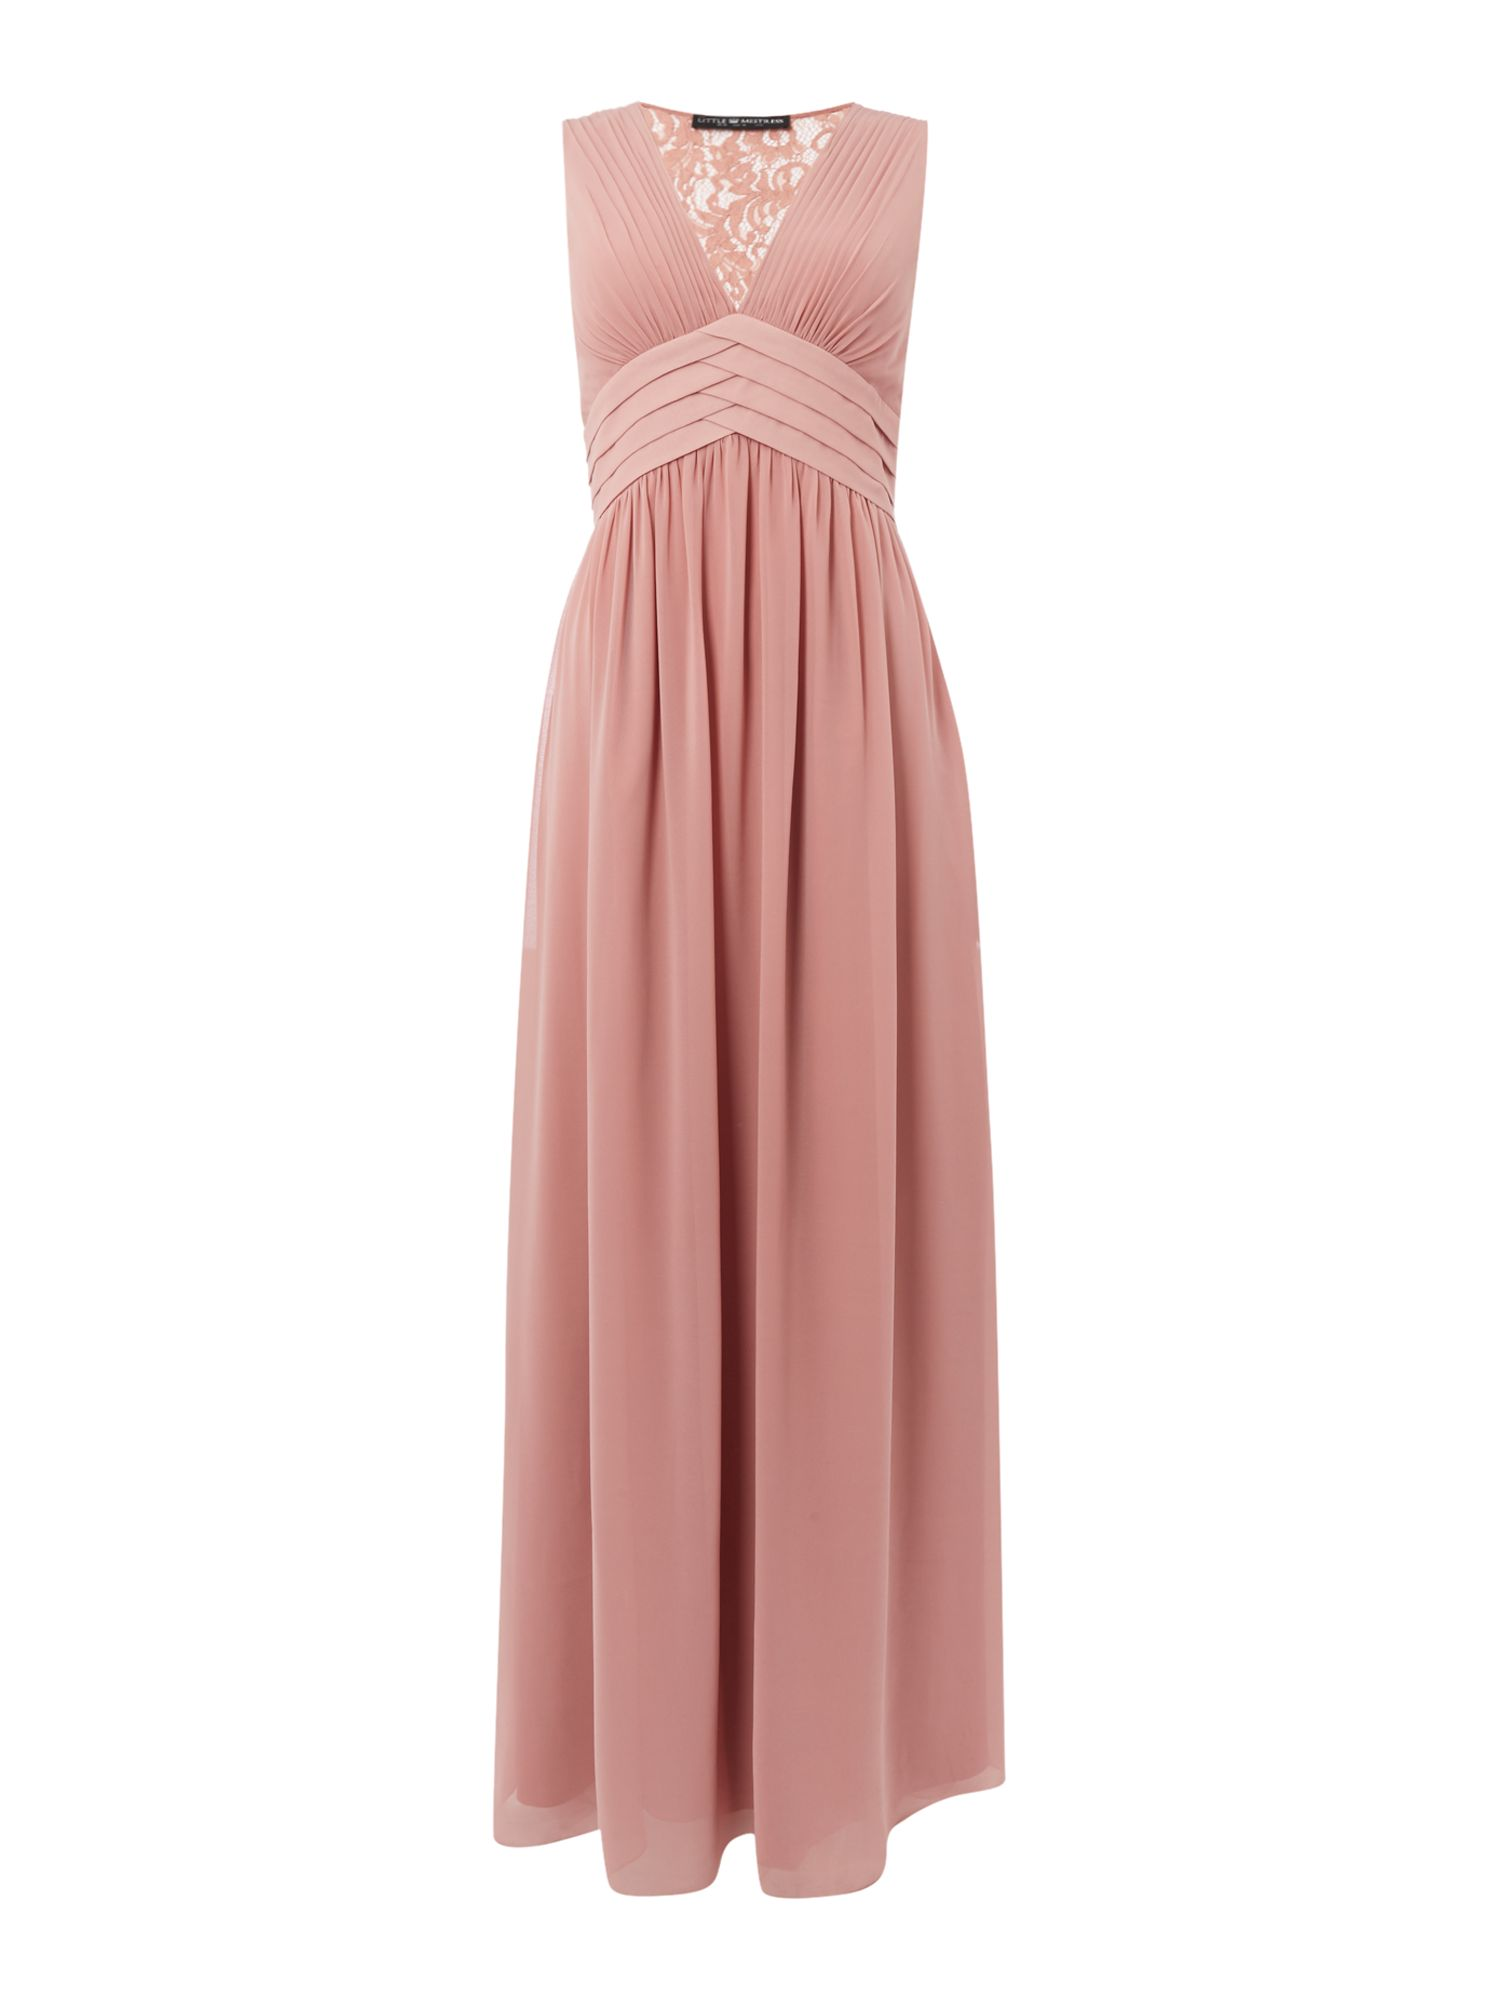 Little Mistress Sleeveless Lace Back Maxi Dress, Apricot